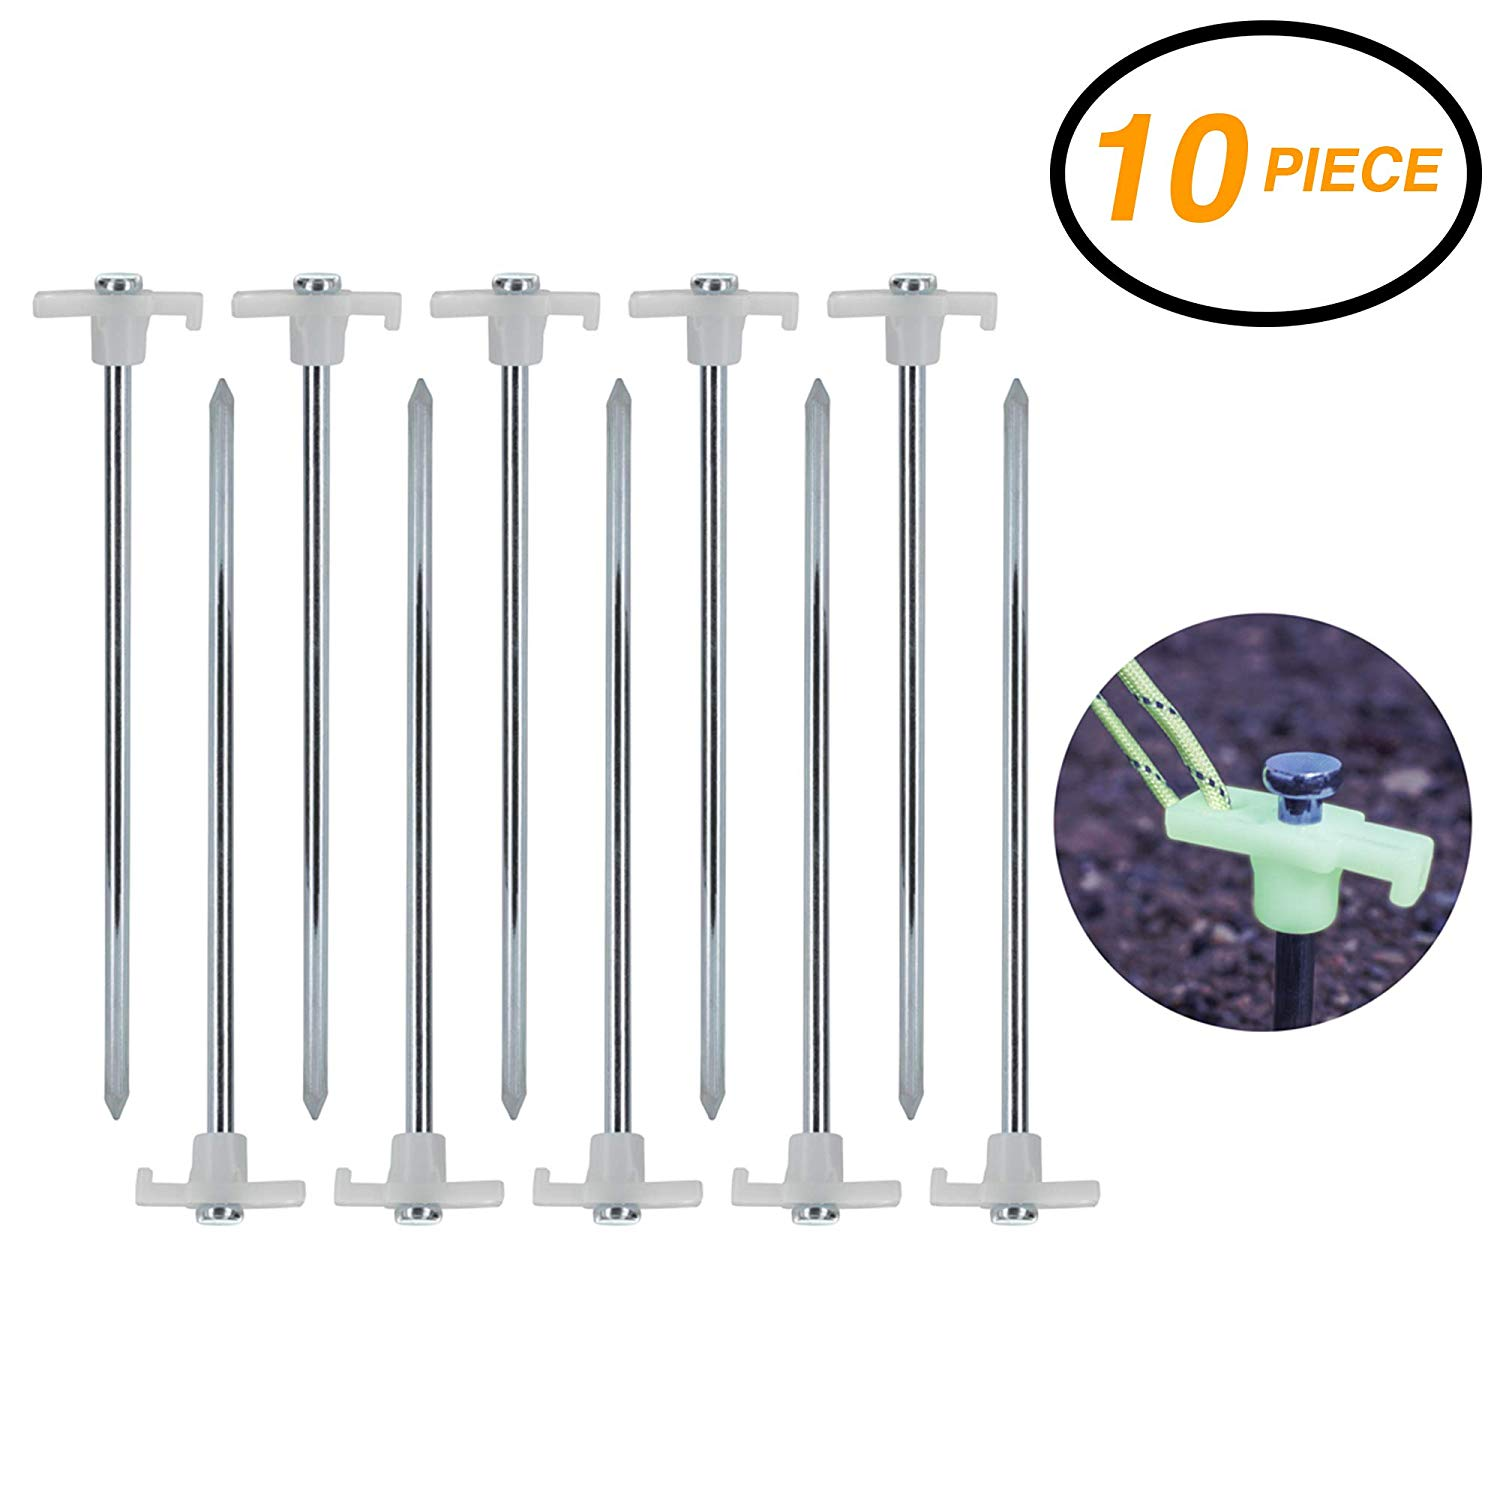 Black AVESON Pack of 4 Burly Solid Forged Steel Camping Tent Stakes Heavy Duty Tent Pegs with Nylon Pouch